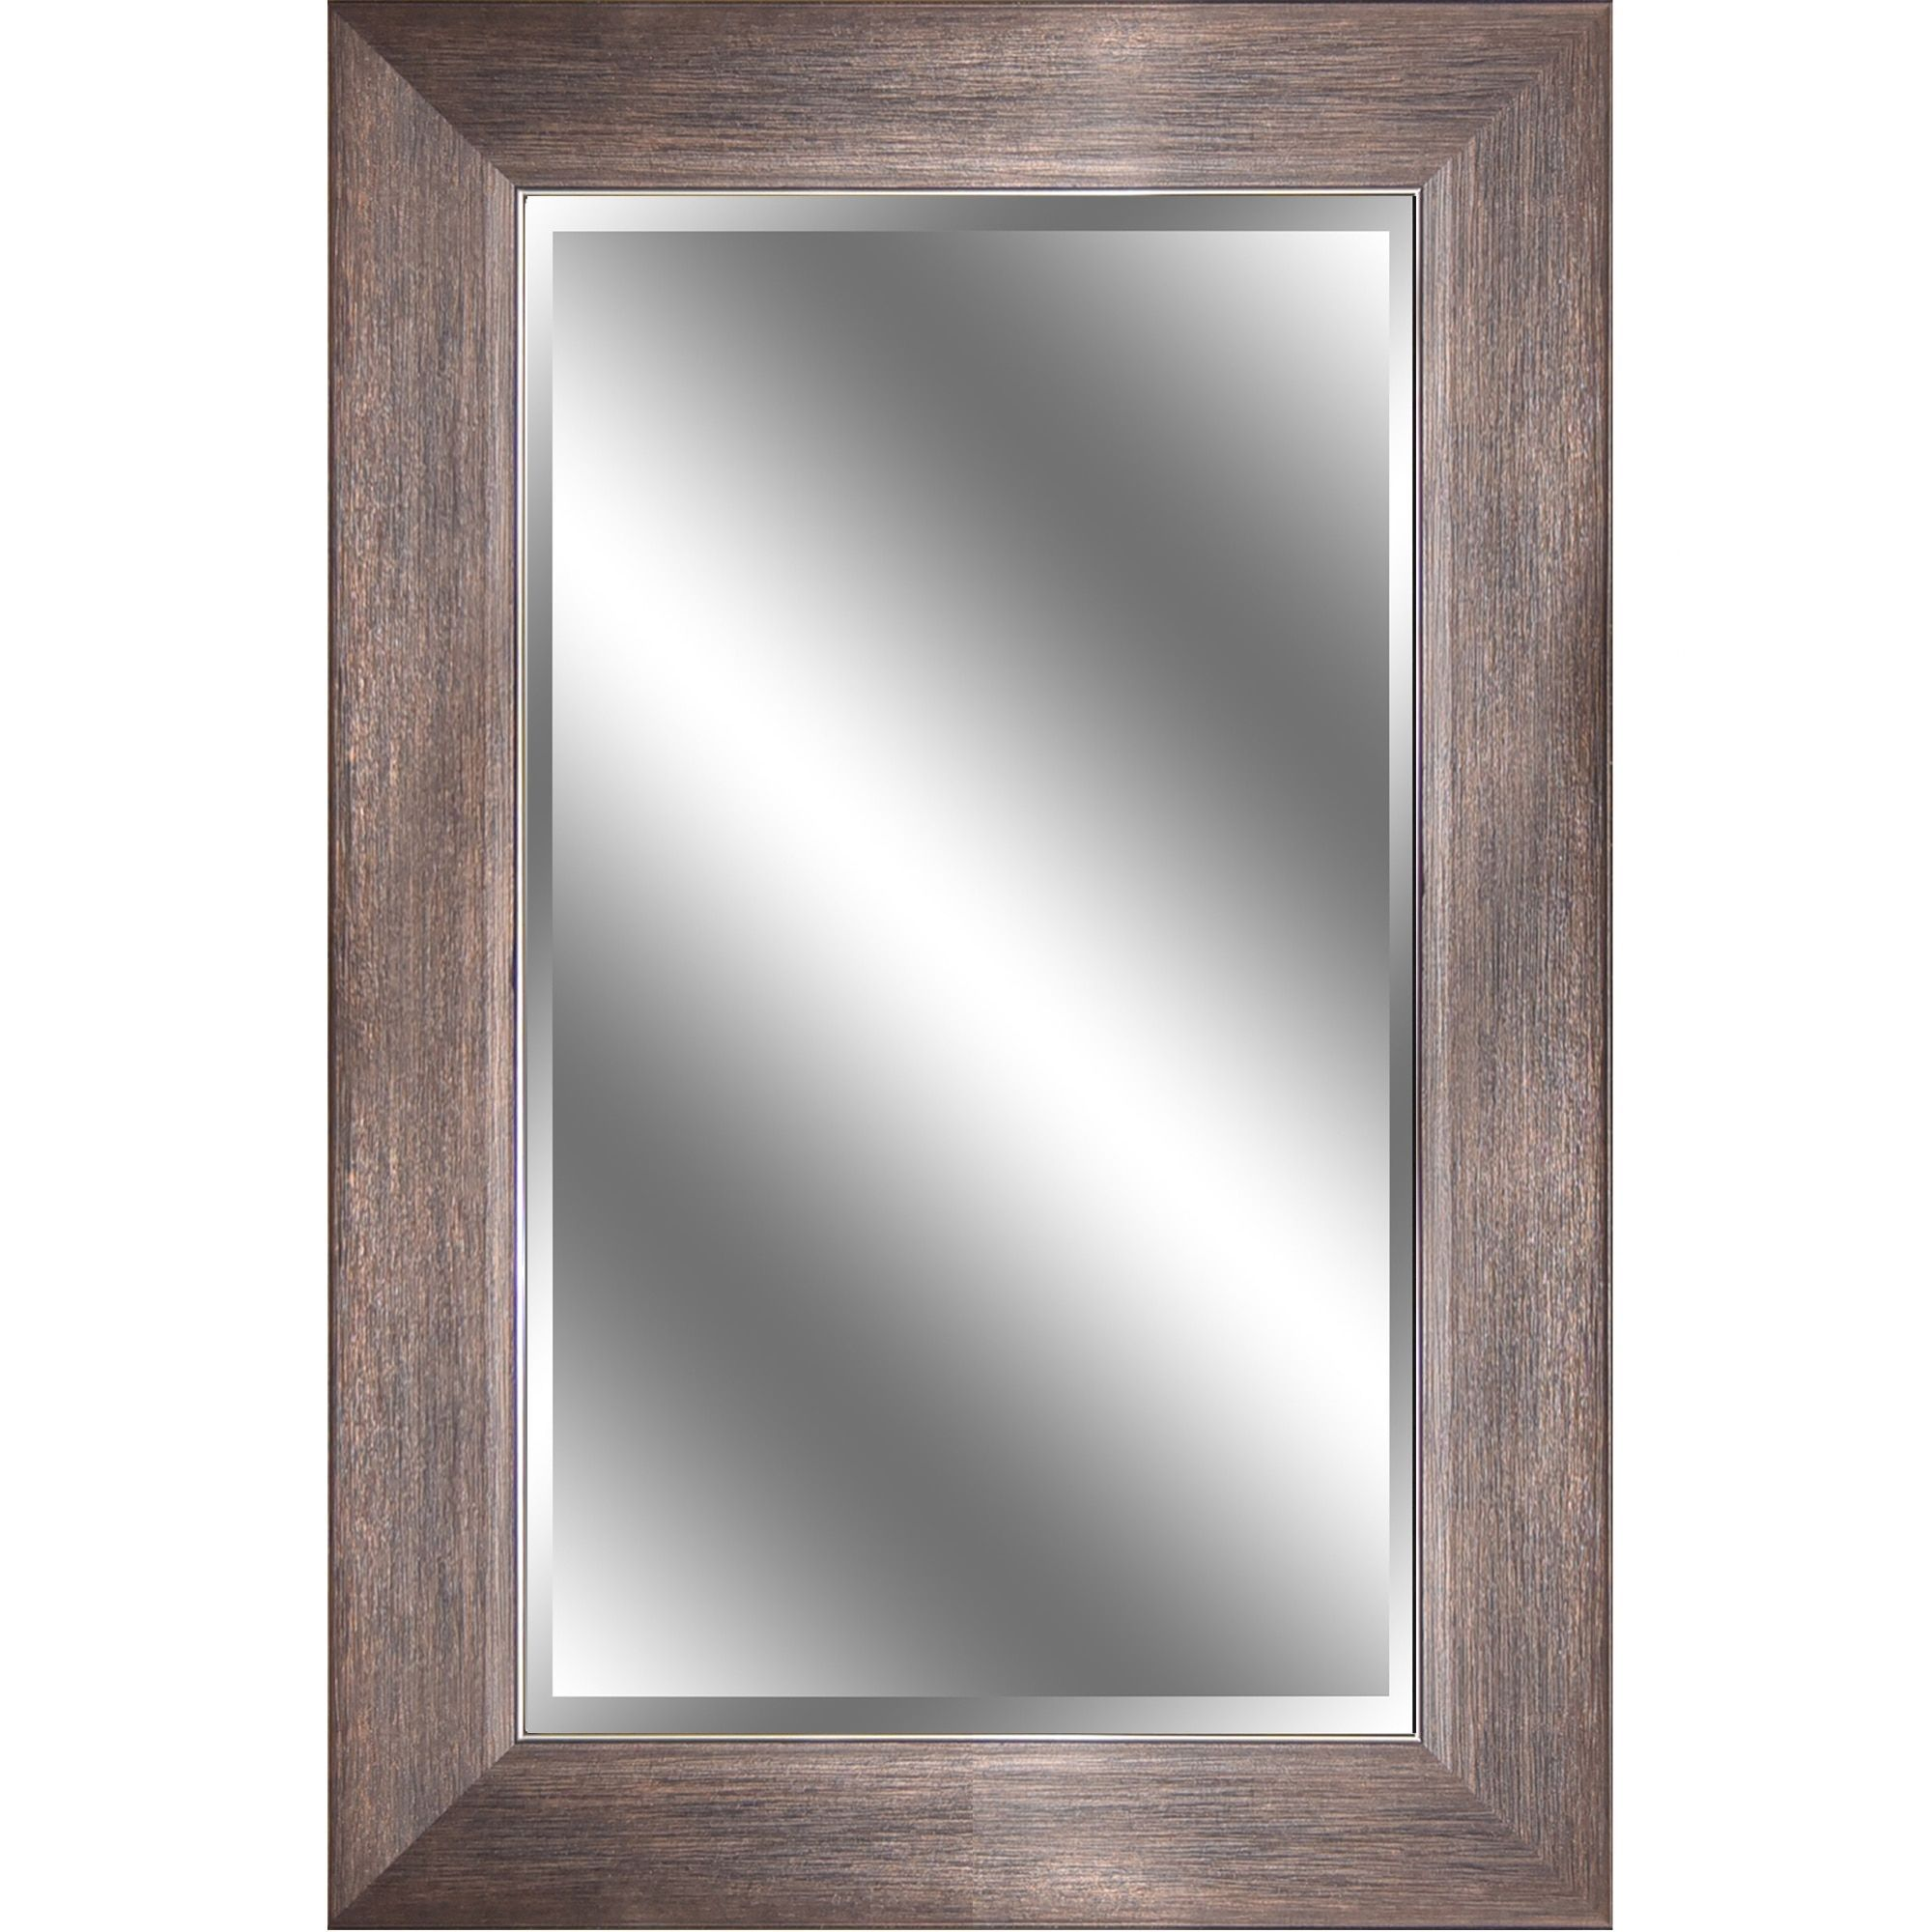 Y-Decor REFLECTION 24 x 36 x 1-inch Mirror with Bronze with Wood ...